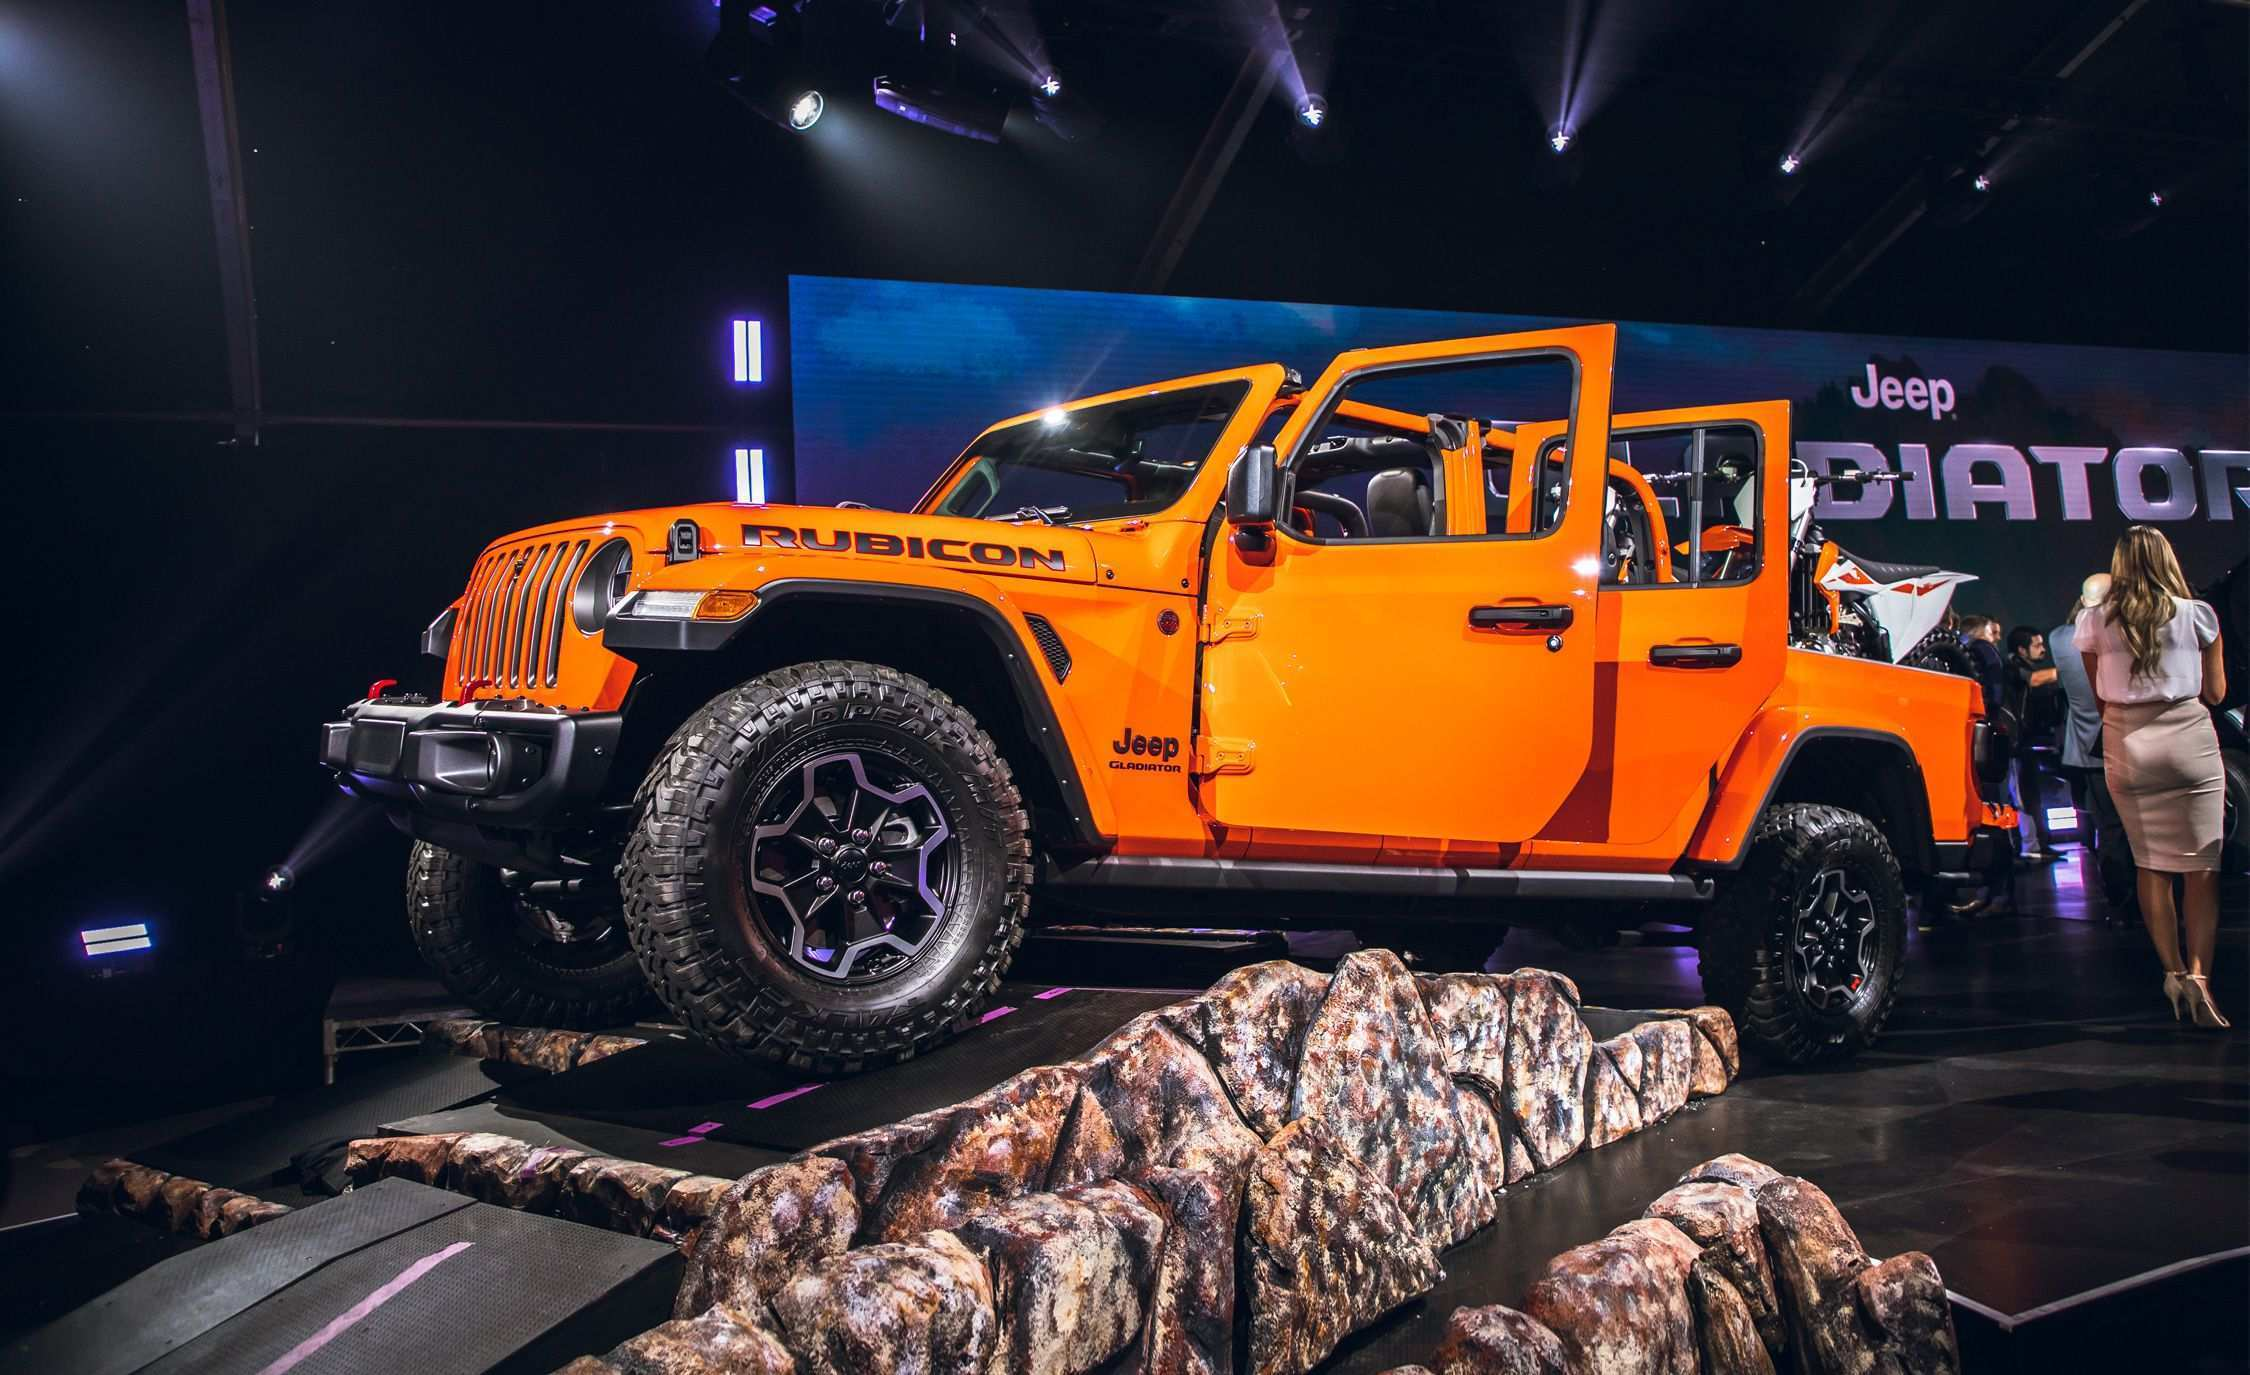 21 New Best Jeep Wrangler Pickup 2019 Concept Redesign And Review Model by Best Jeep Wrangler Pickup 2019 Concept Redesign And Review